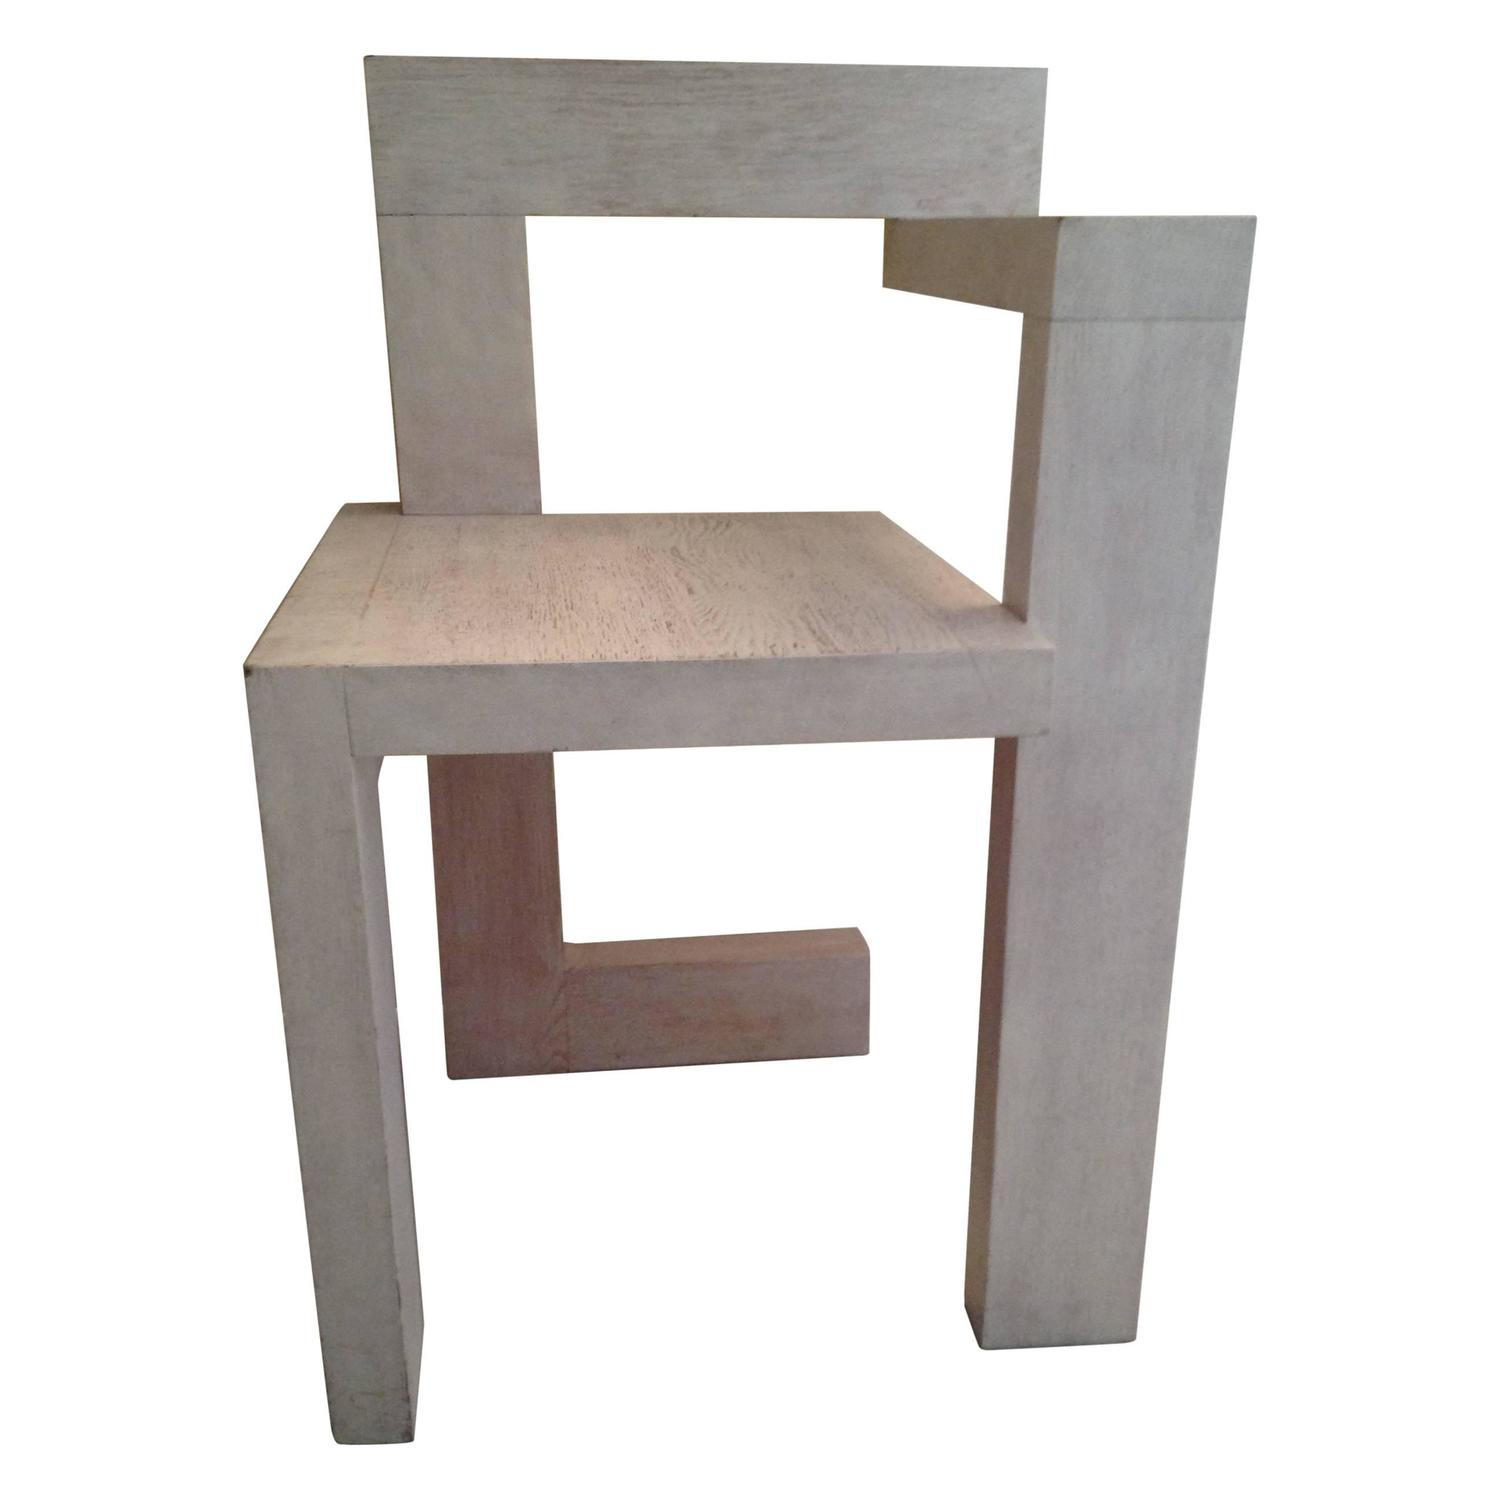 Gerrit rietveld chair for sale - Steltman Chair By Gerrit Rietveld White Stained Oak 1963 For Sale At 1stdibs